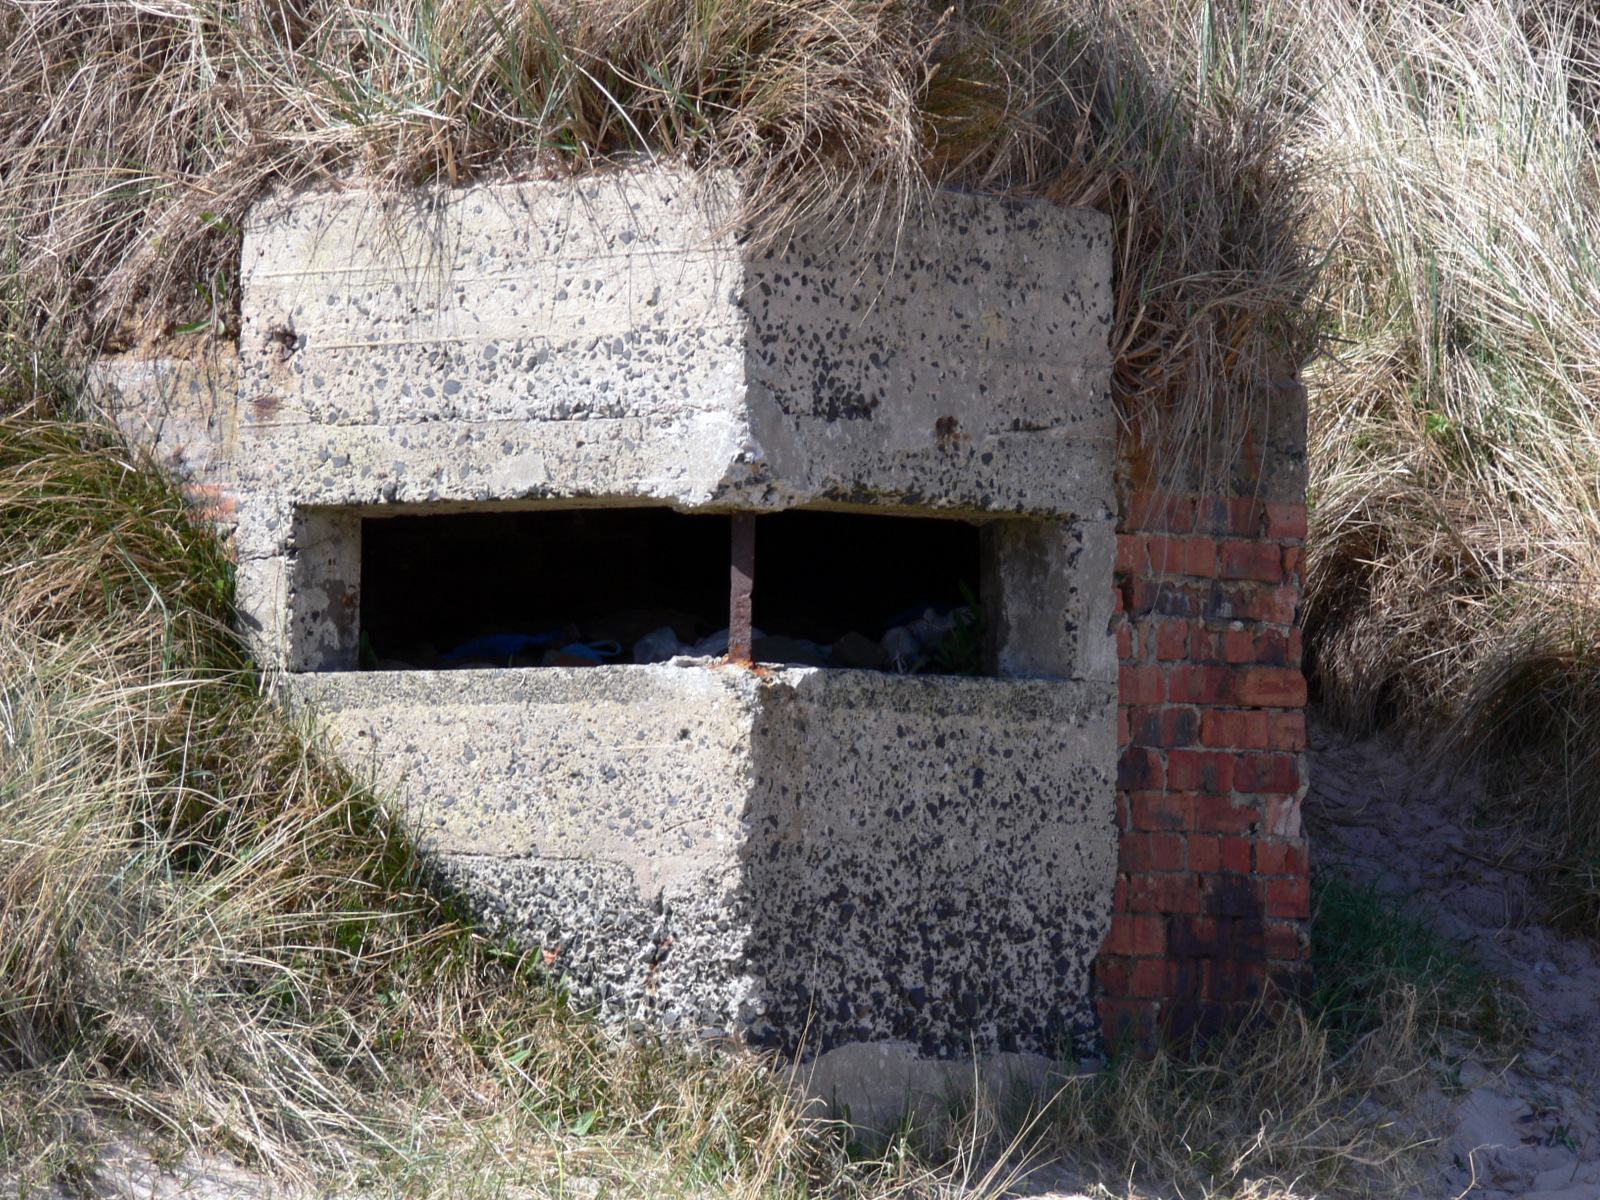 Pillbox (Variant) built into the dunes at Embleton Links.